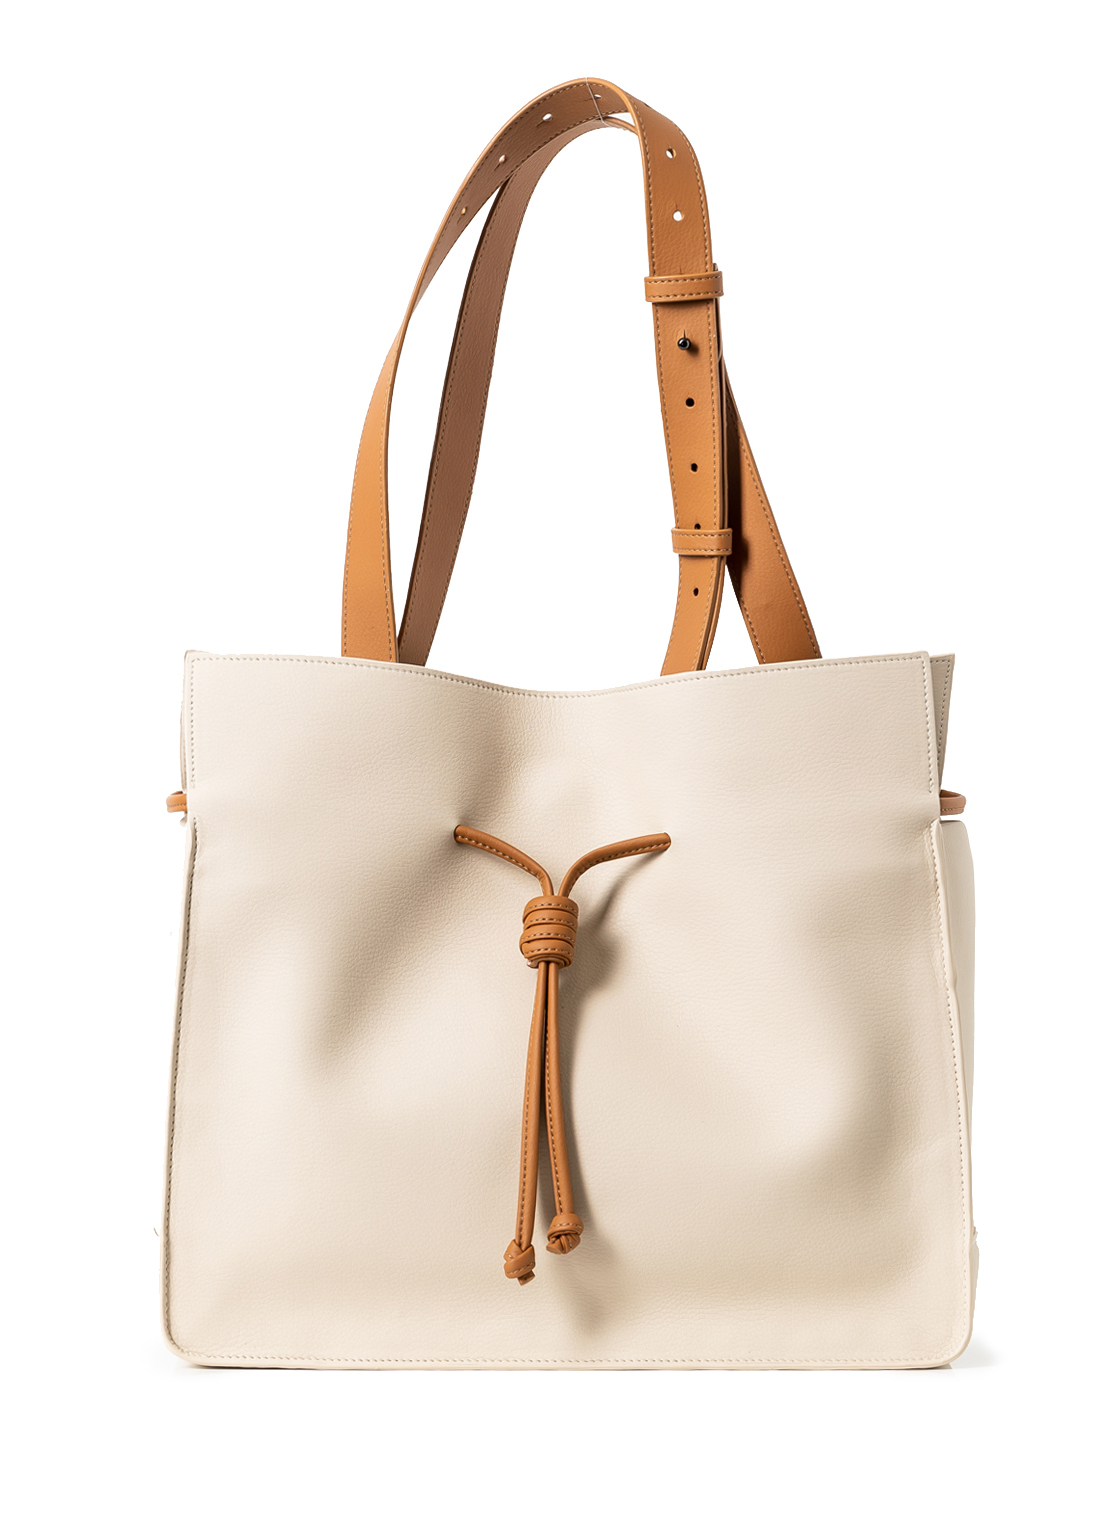 The Medium Shopper in Oat & Caramel